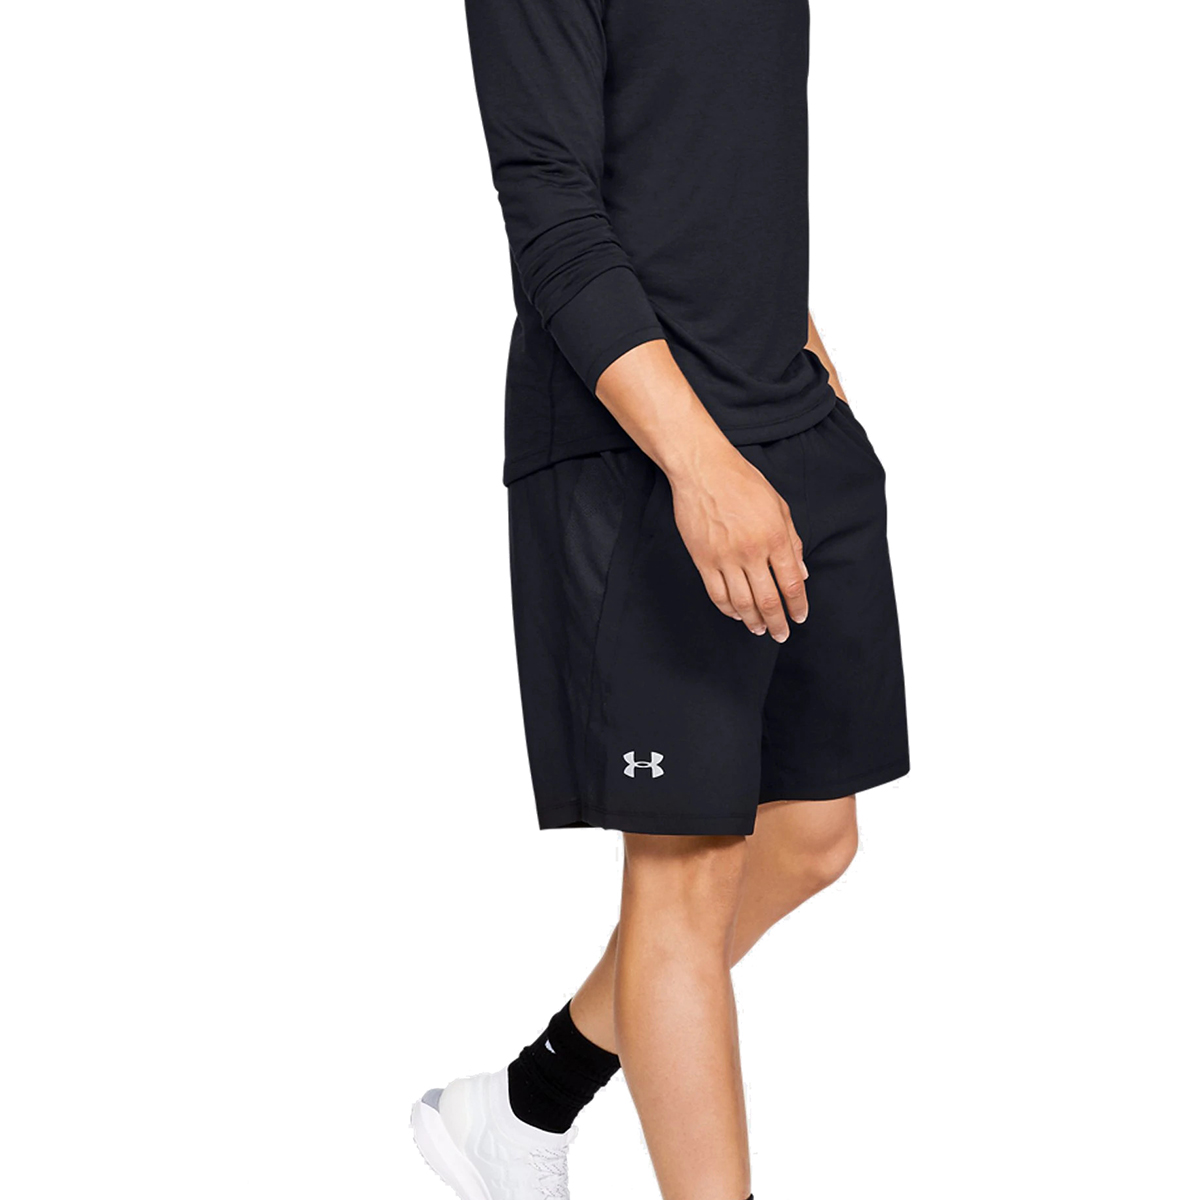 Men's Under Armour Launch SW 9in Shorts - Color: Black/Black/Reflective - Size: S, Black/Reflective, large, image 1